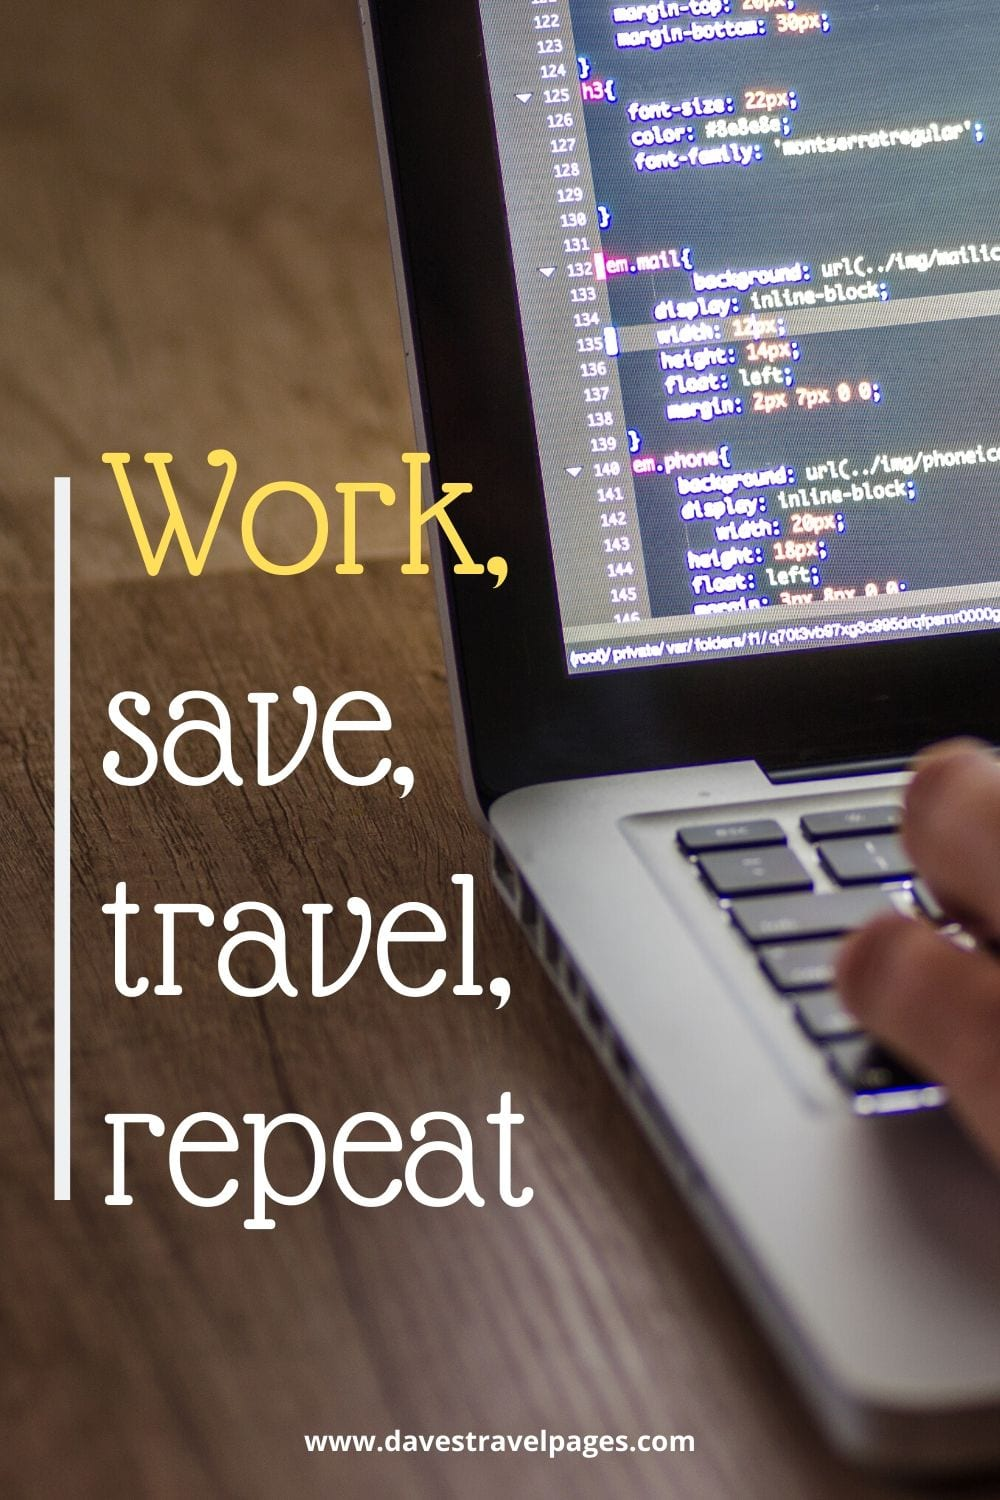 Short travel quotes for inspiration - Work, save, travel, repeat